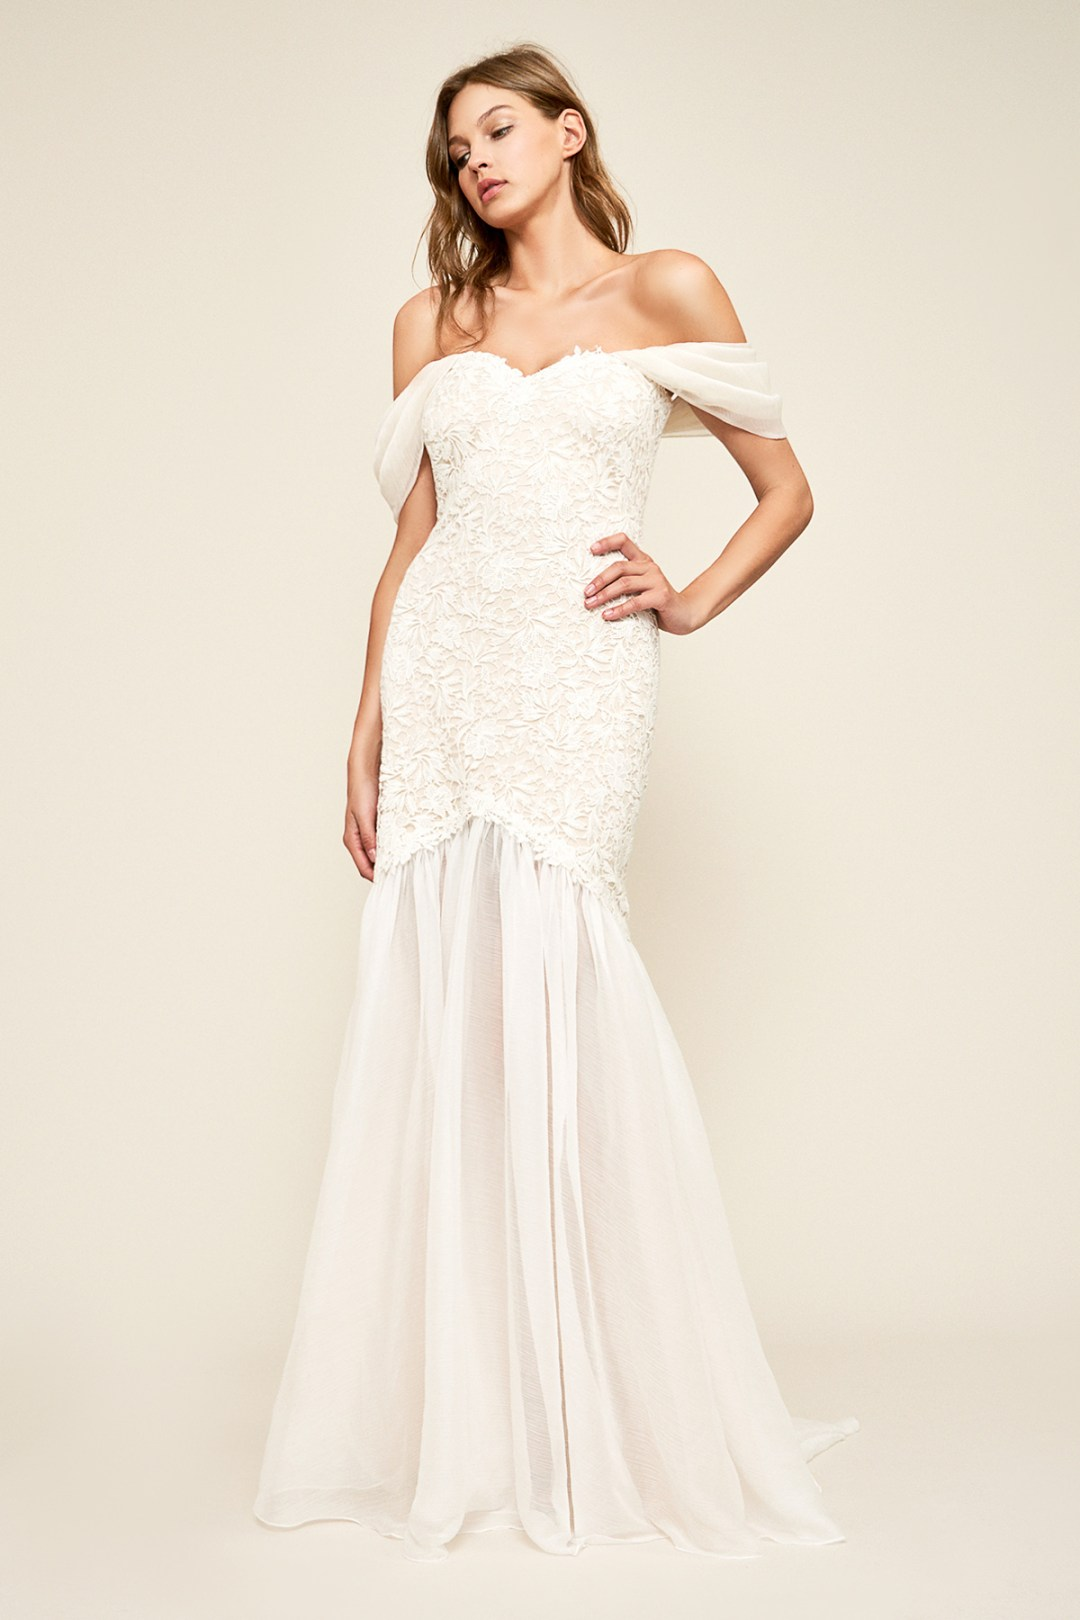 FOR IMMEDIATE RELEASE  TADASHI SHOJI COLLECTION NEW ARRIVALS + Top ... b383c135a